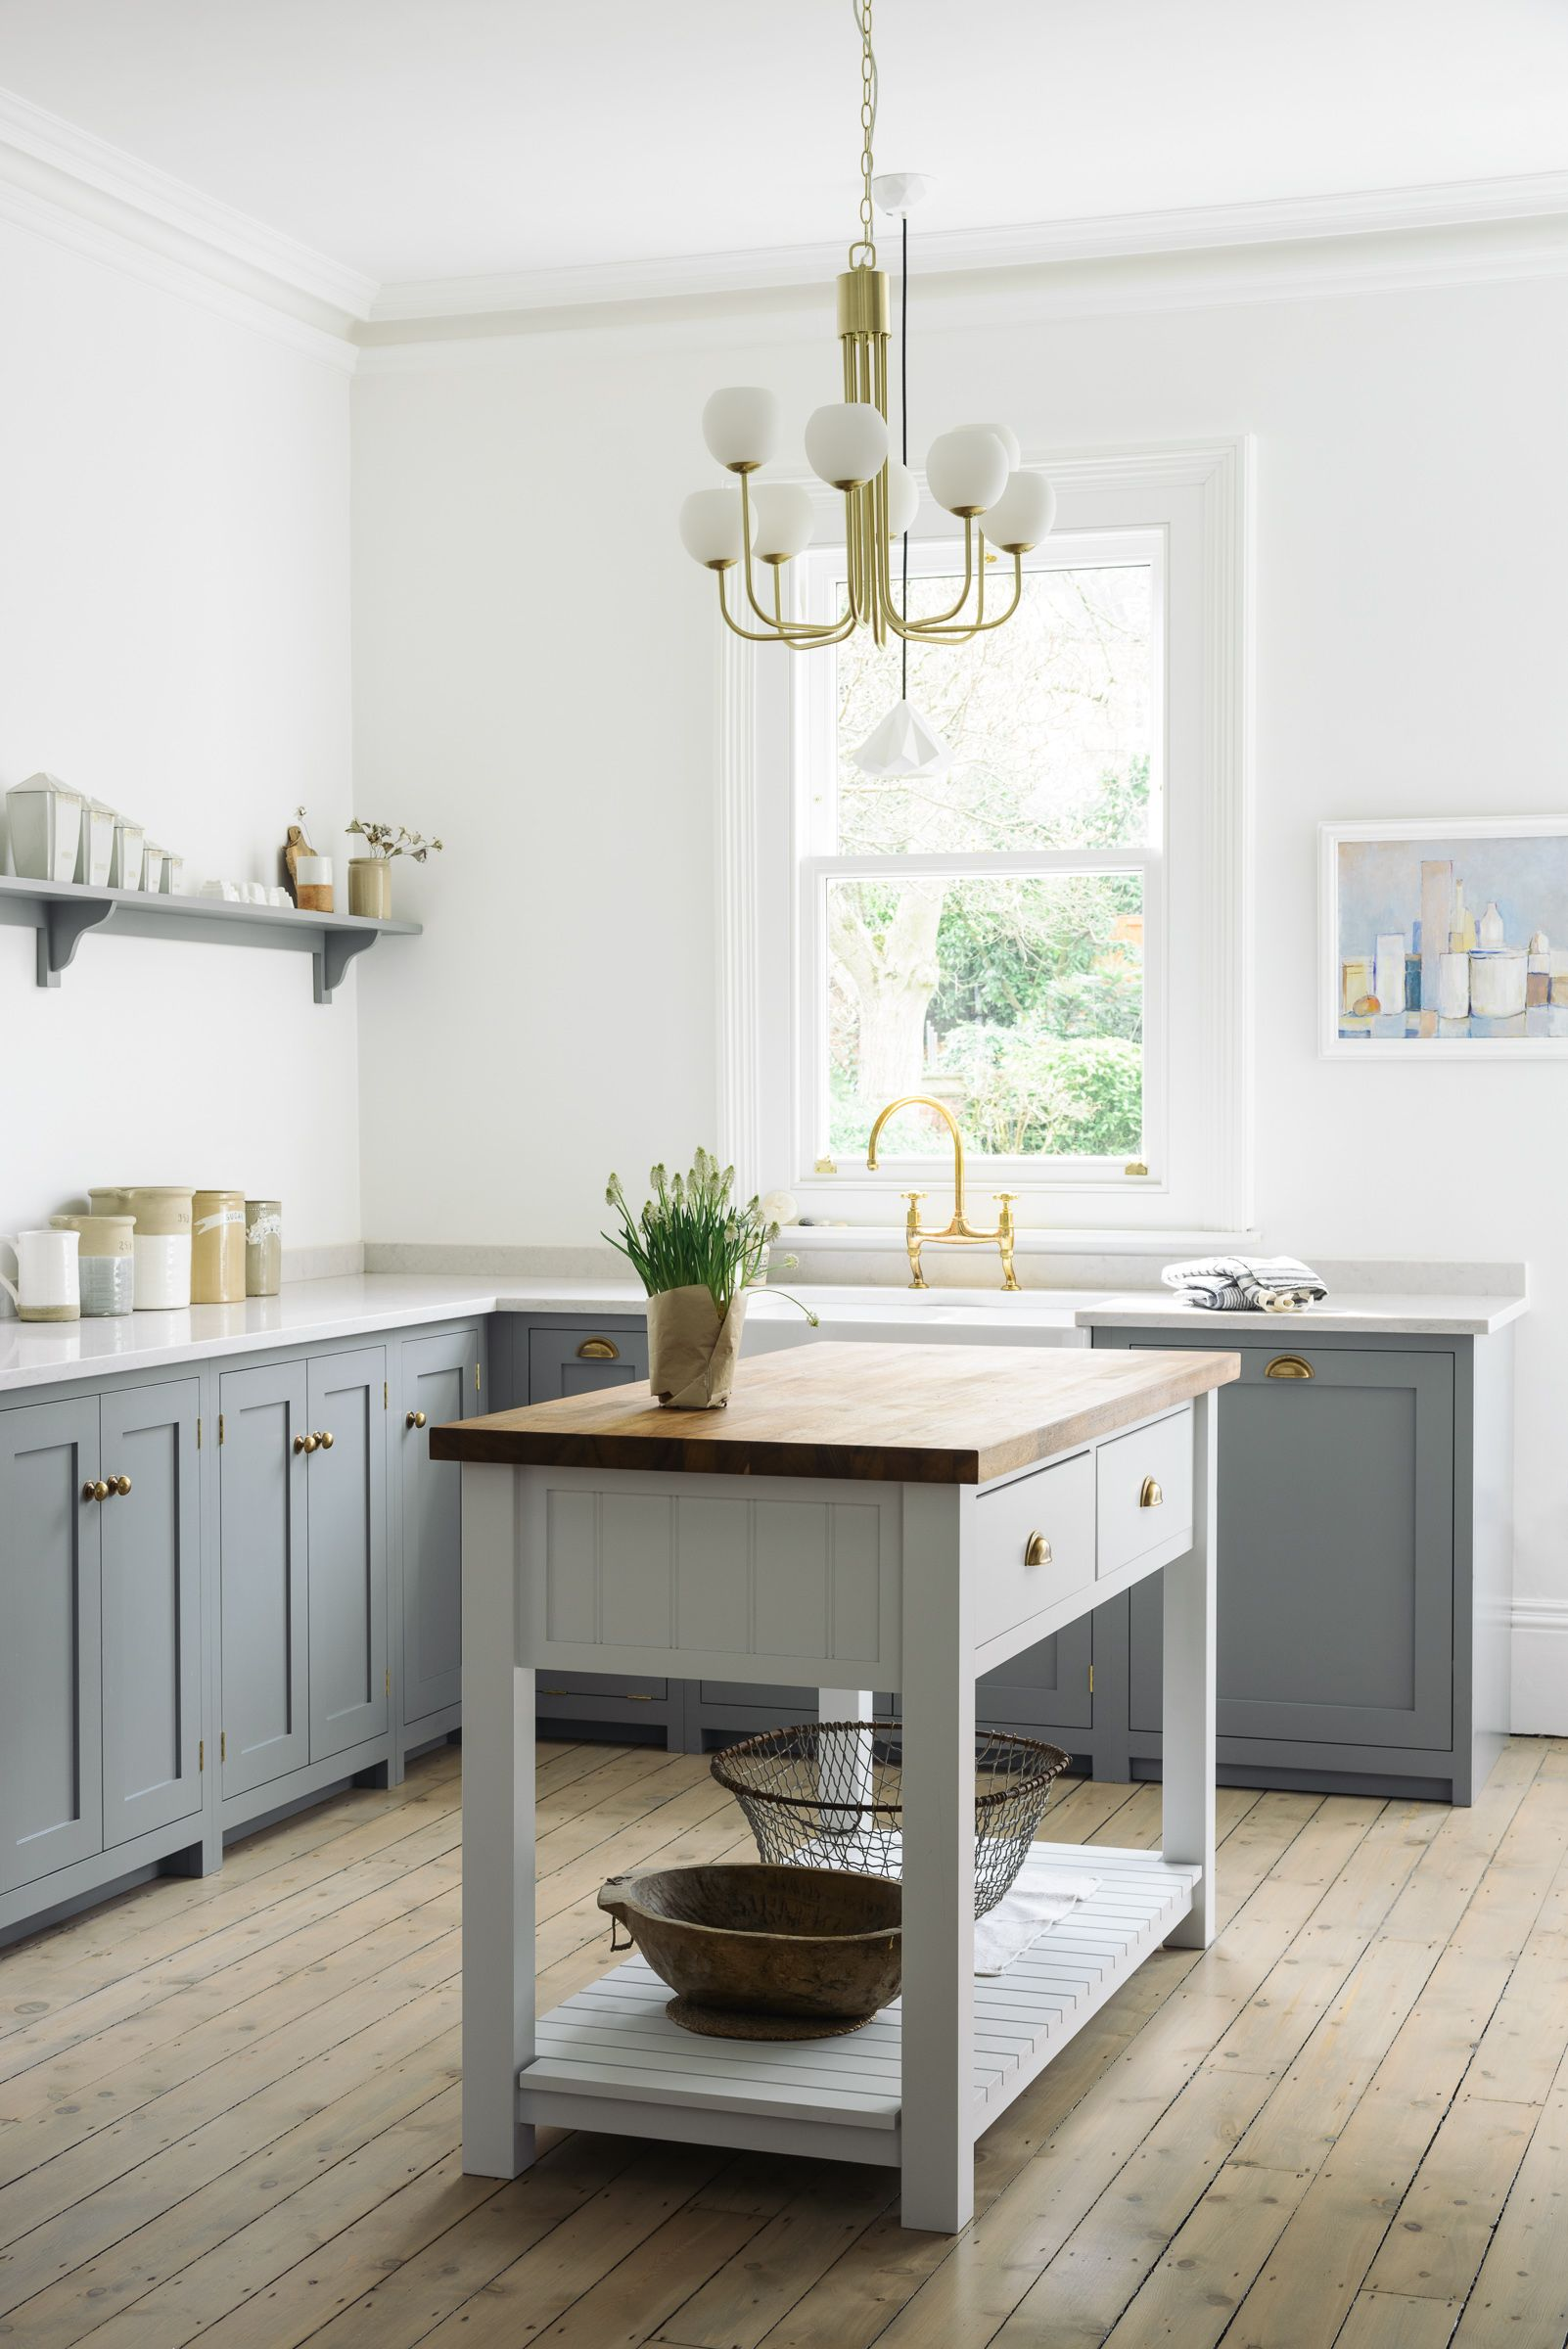 How to Have Exciting Kitchen Island Designs